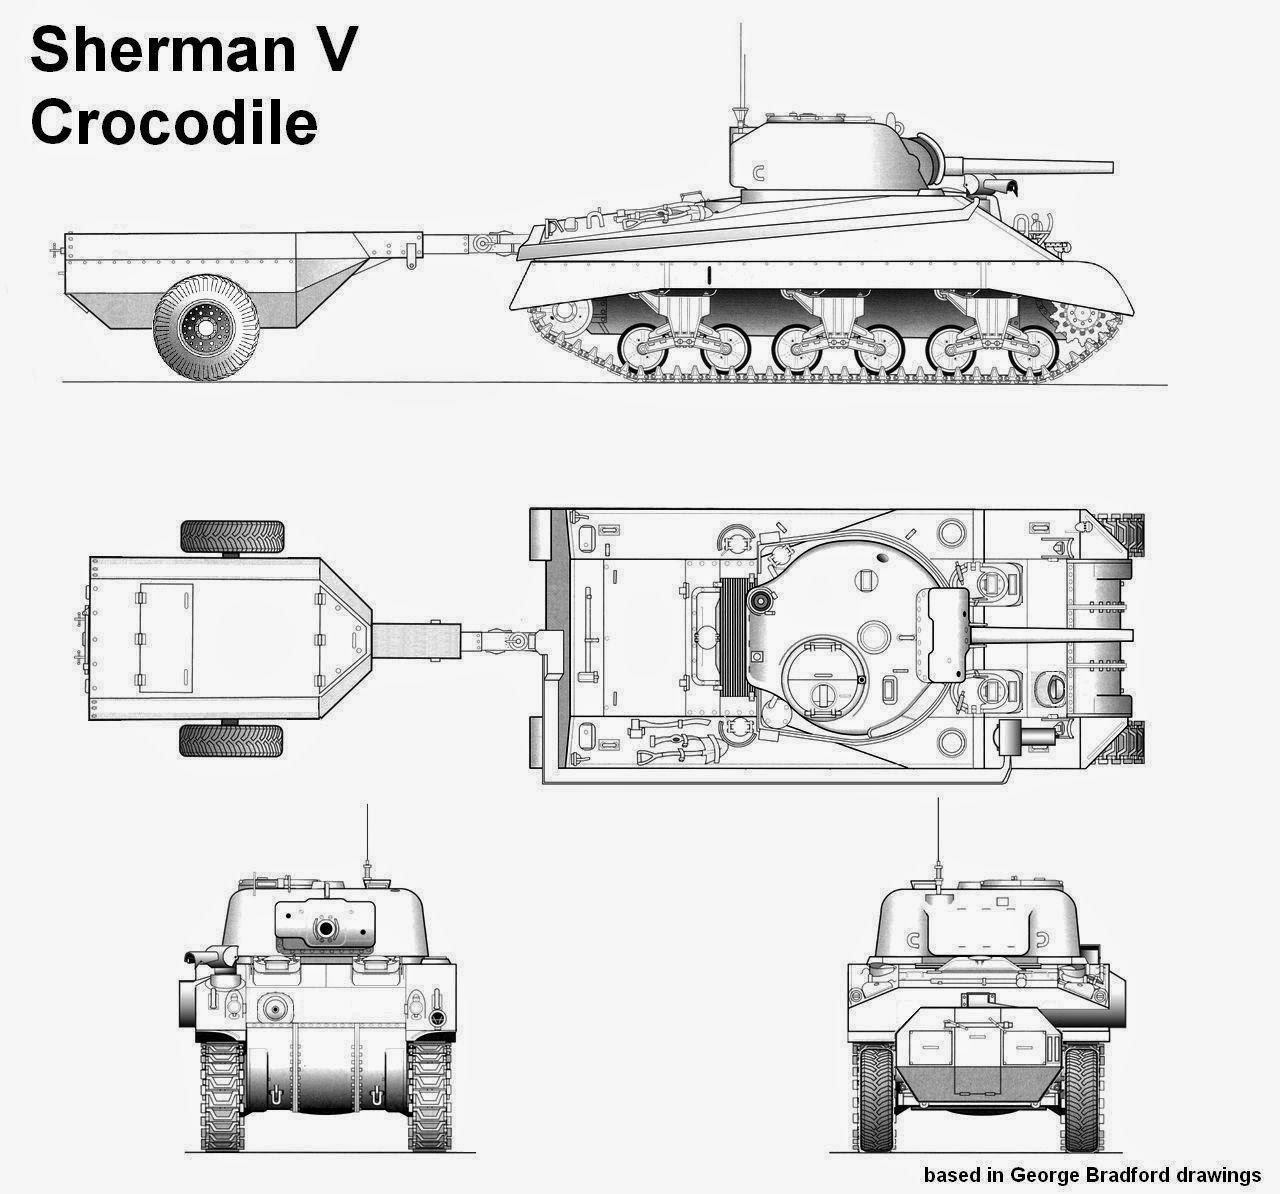 Sherman v crocodile prototype